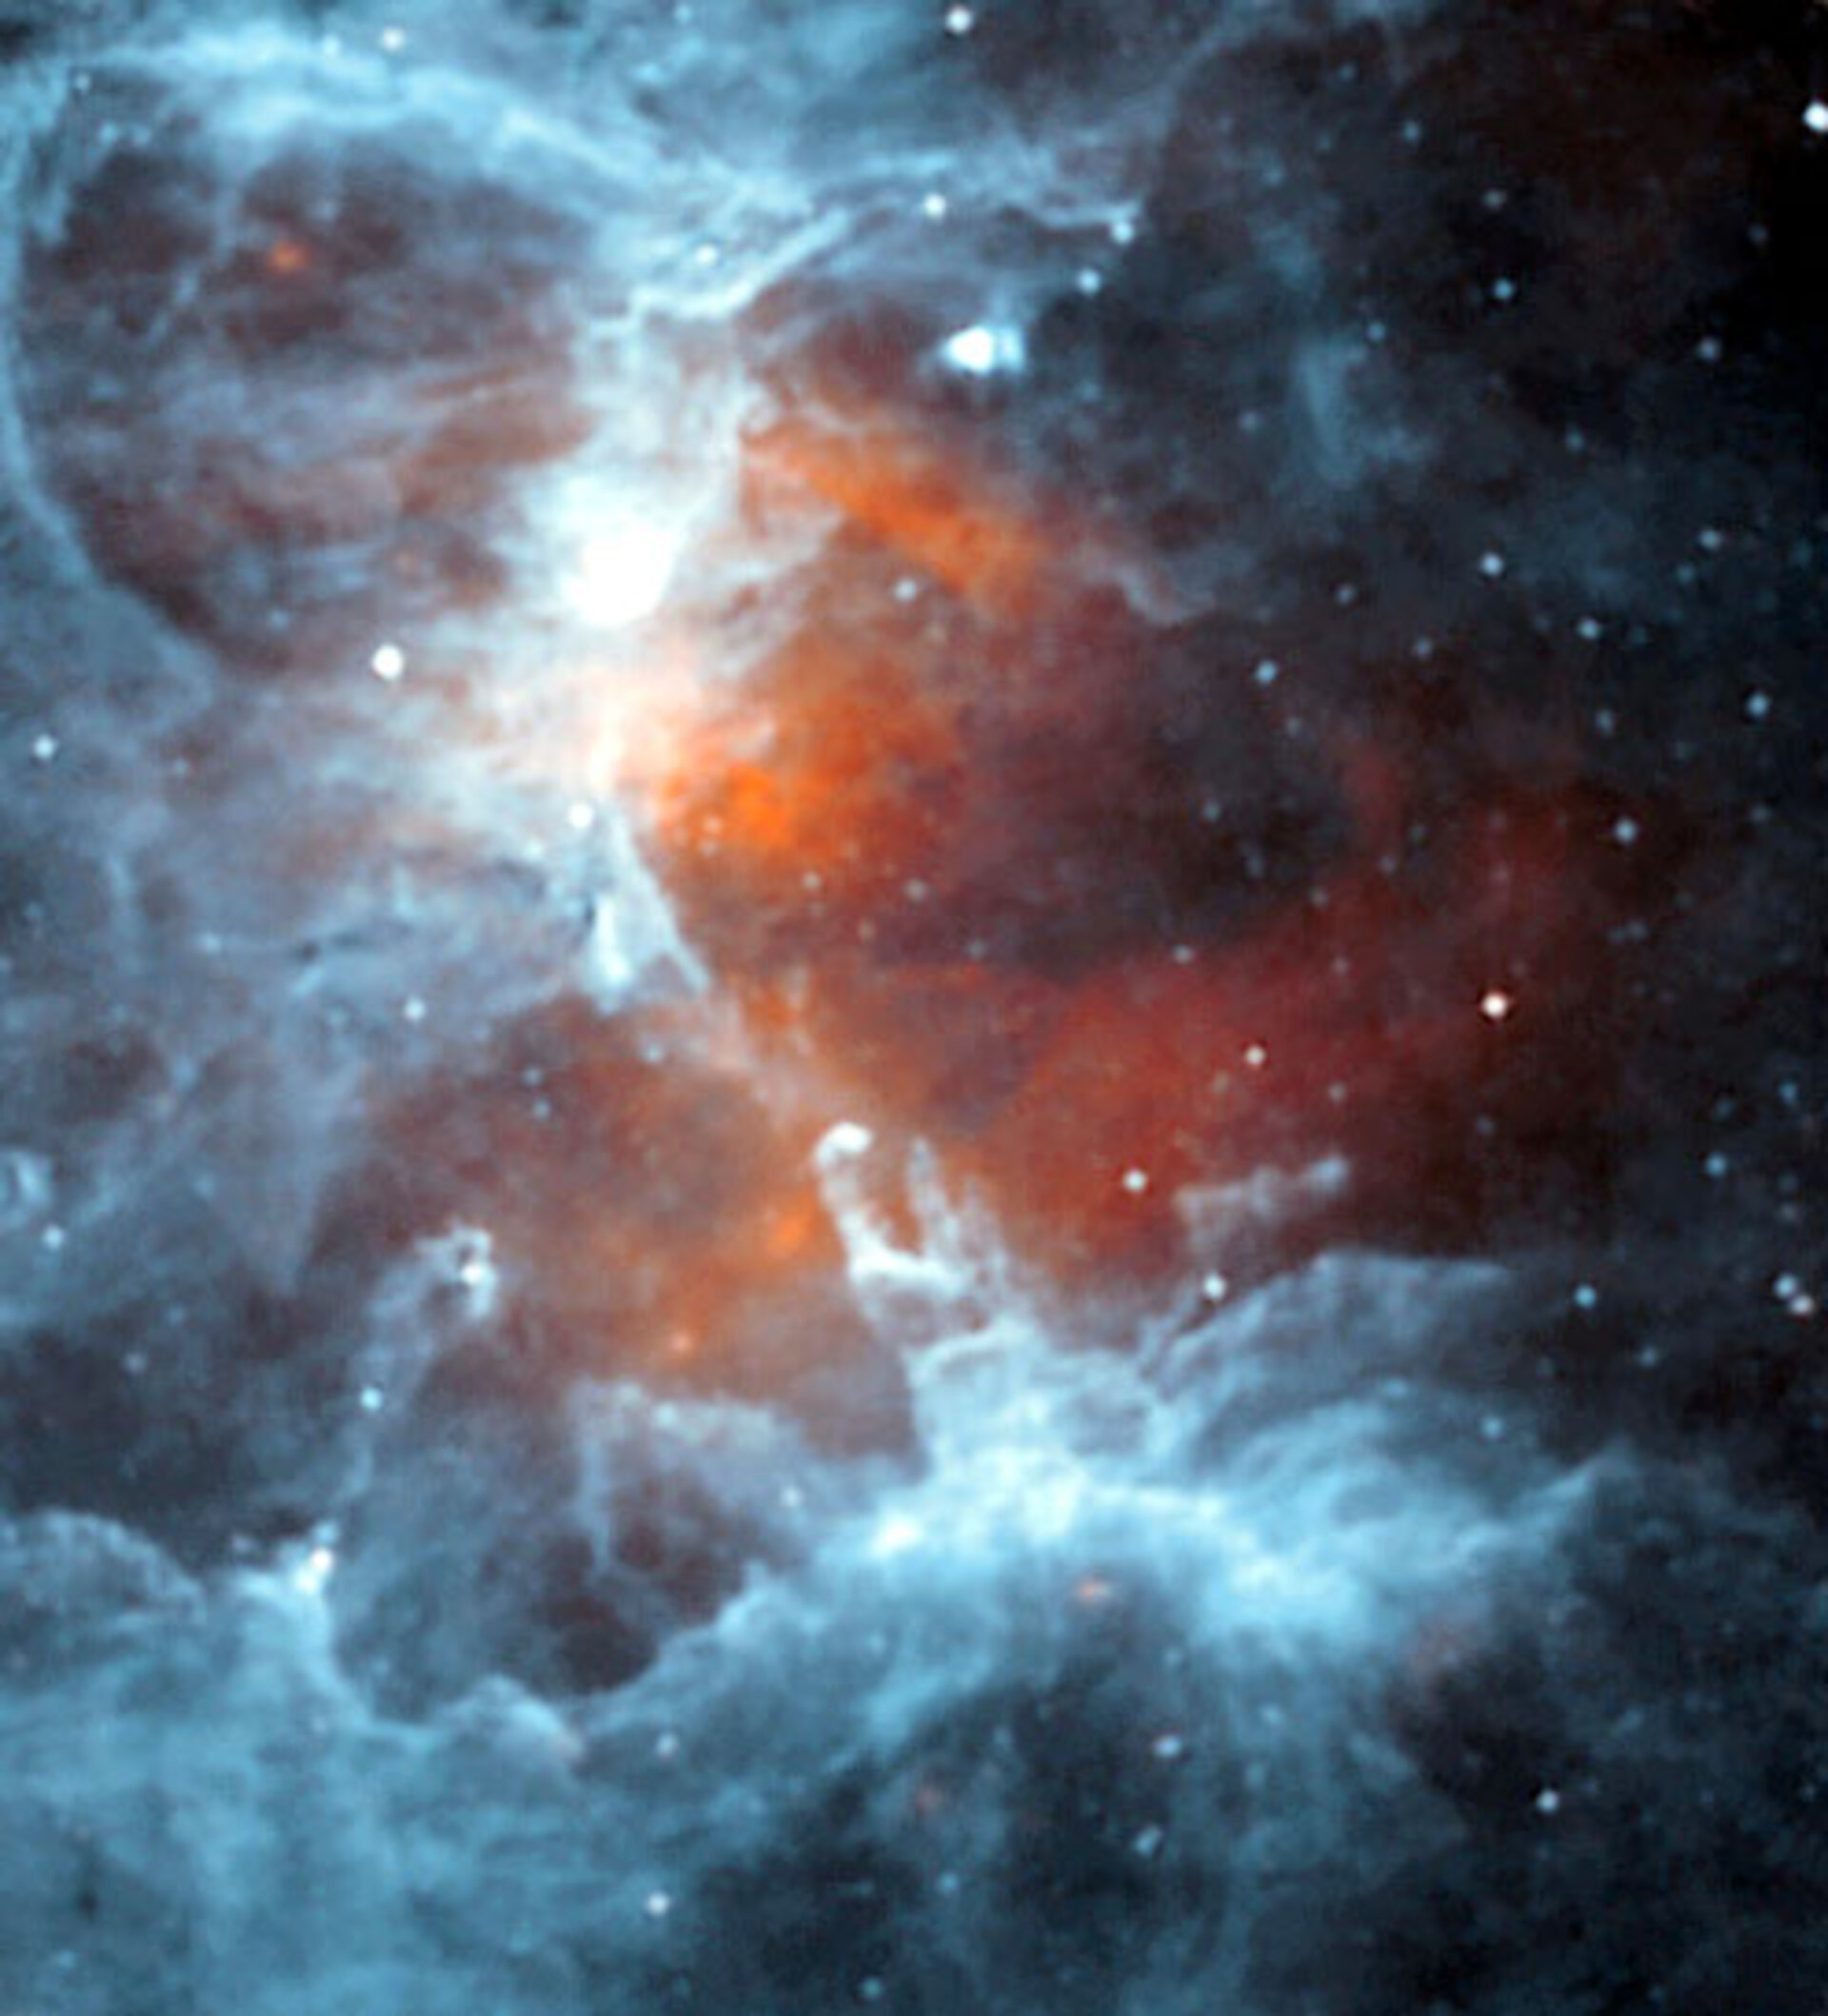 Cold comfort for newborn stars - ISO unmasks the icy veil around the Eagle's fiery heart